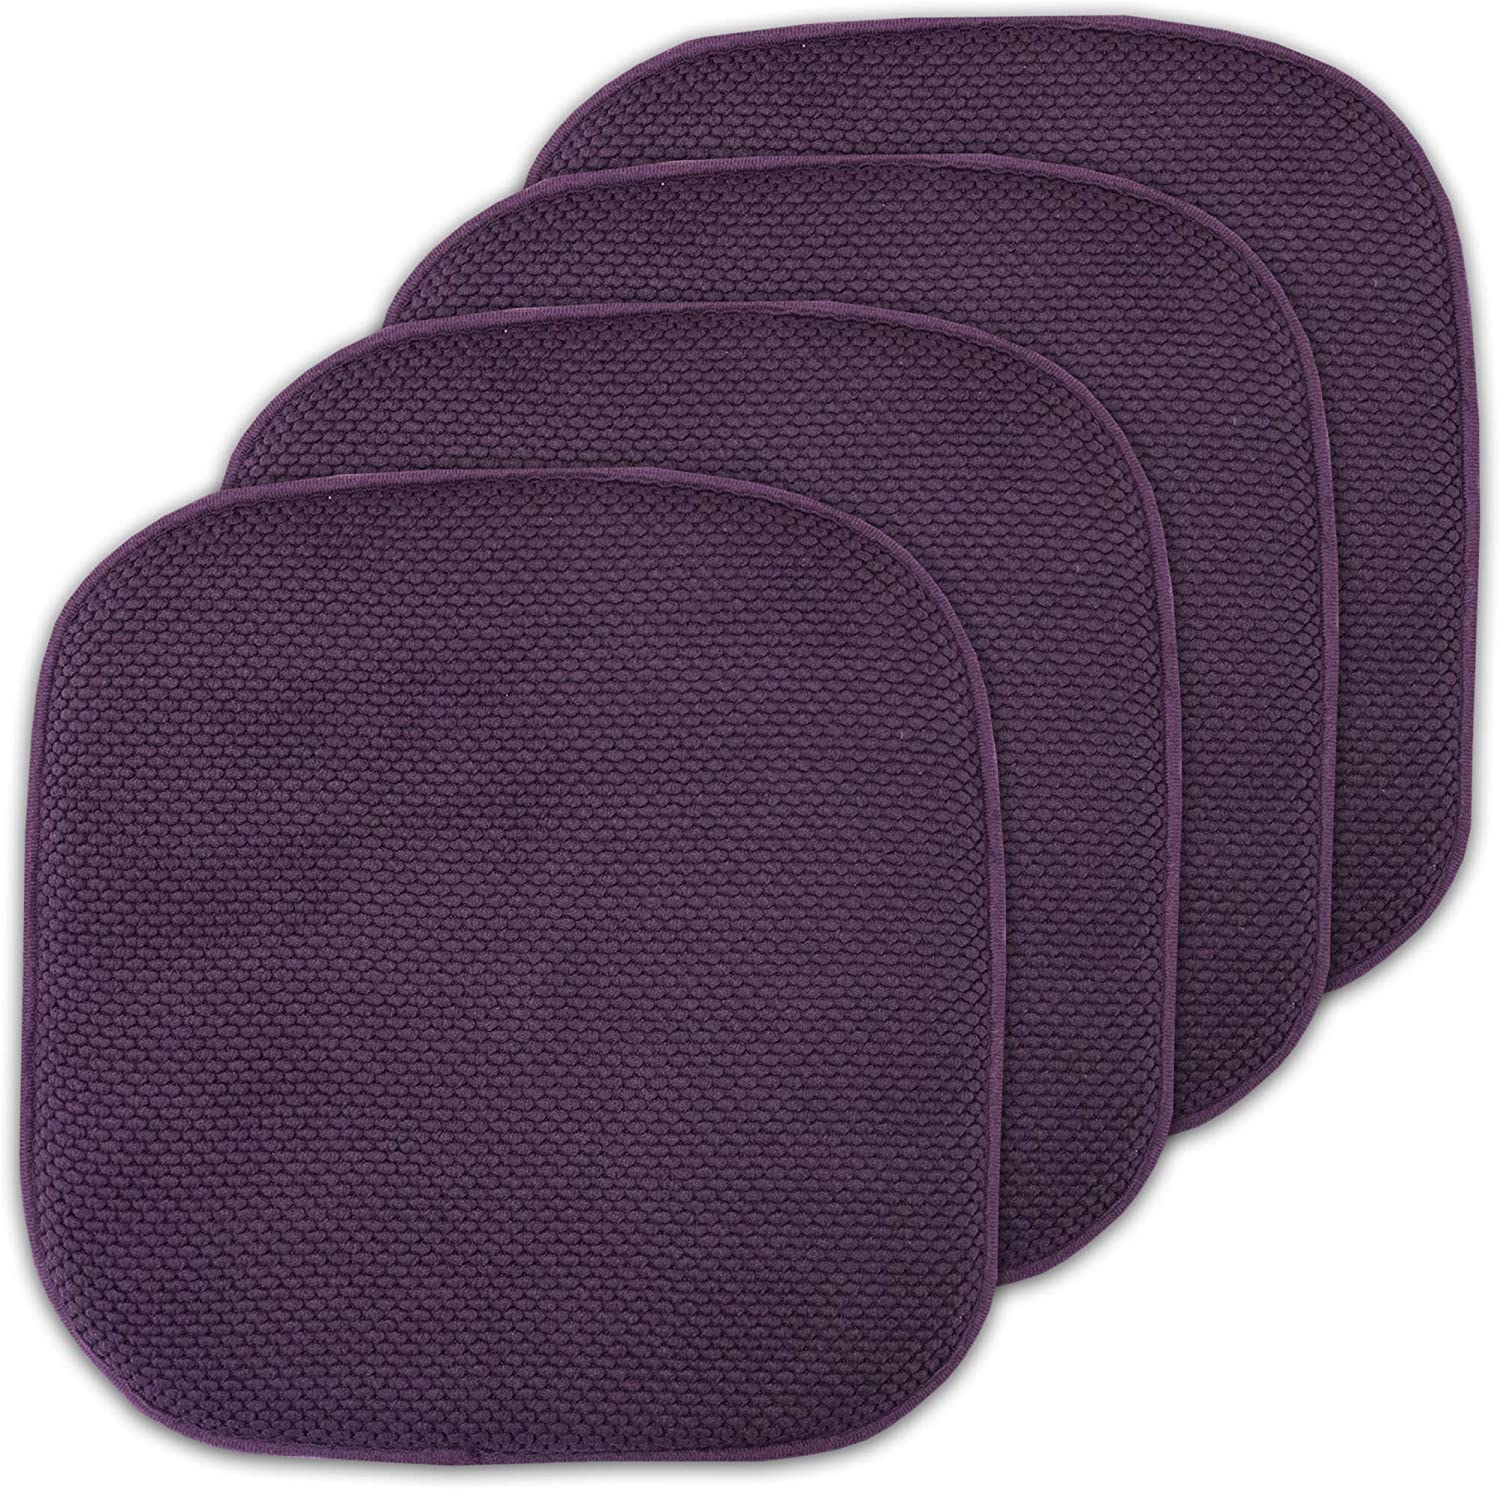 "Sweet Home Collection Cushion Memory Foam Chair Pads Honeycomb Nonslip Back Seat Cover 16"" x 16"" 4 Pack Eggplant Purple"